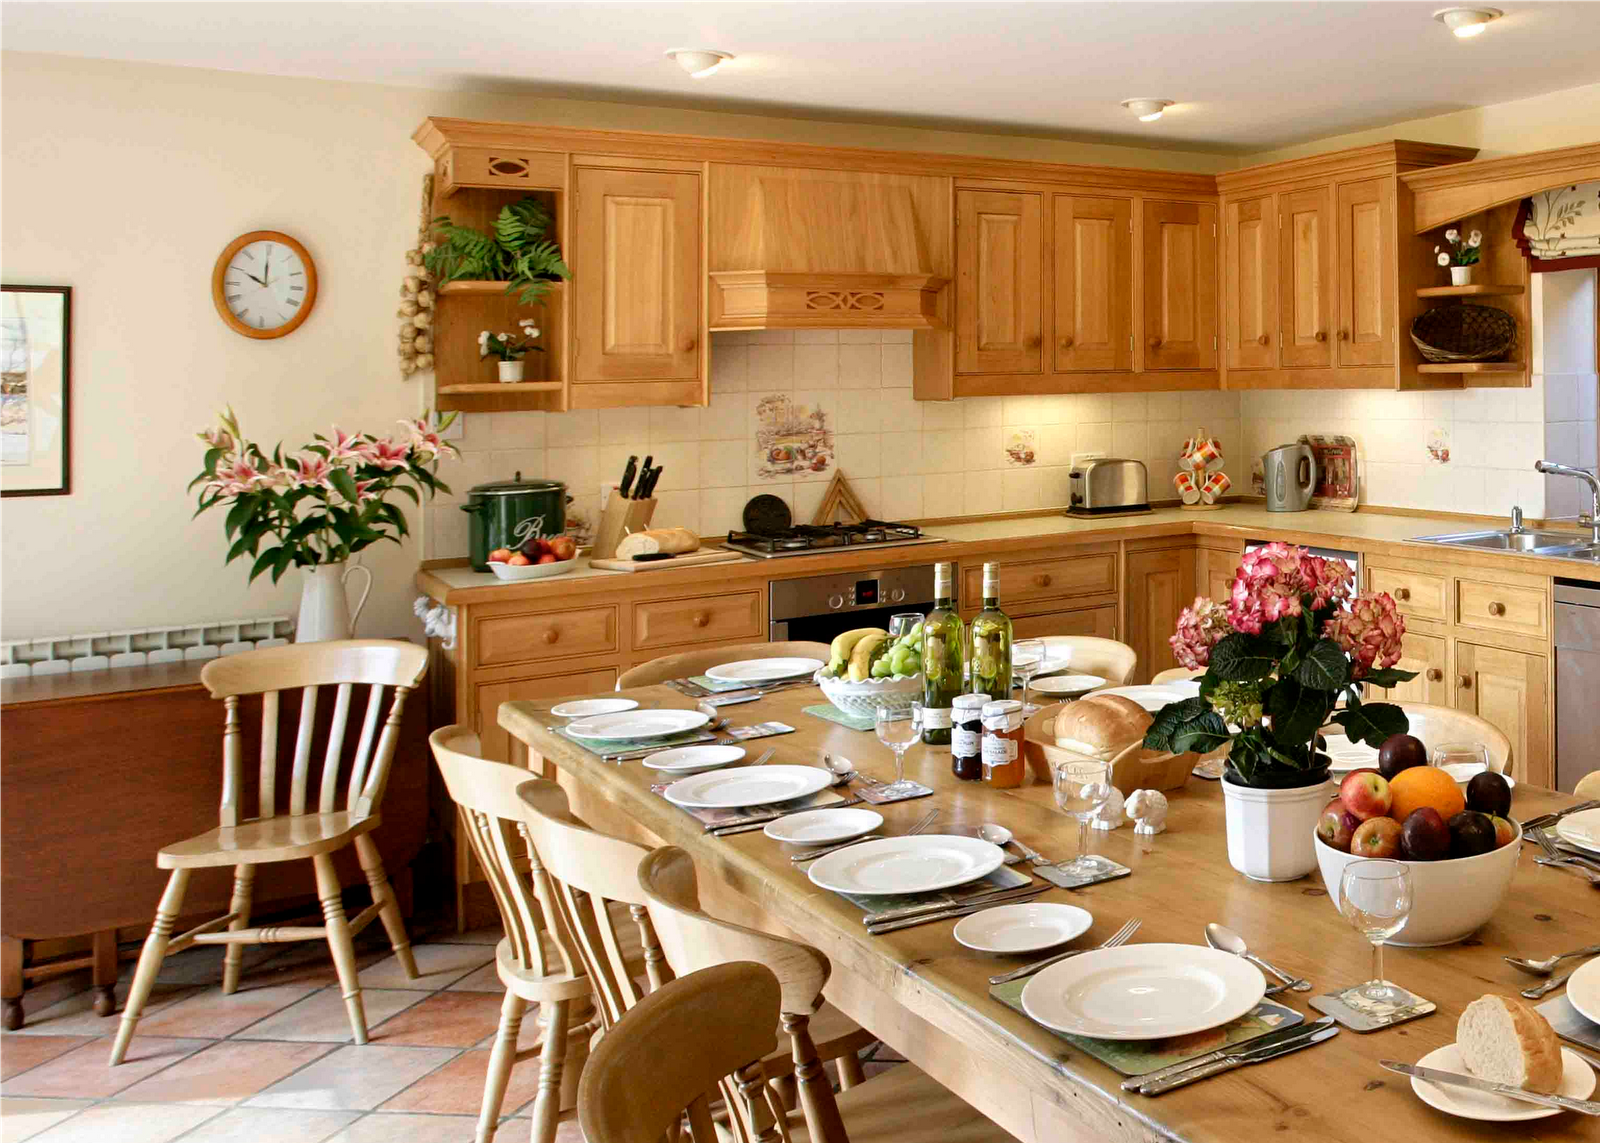 English Country Kitchen Ideas | Design Inspiration of Interior ...